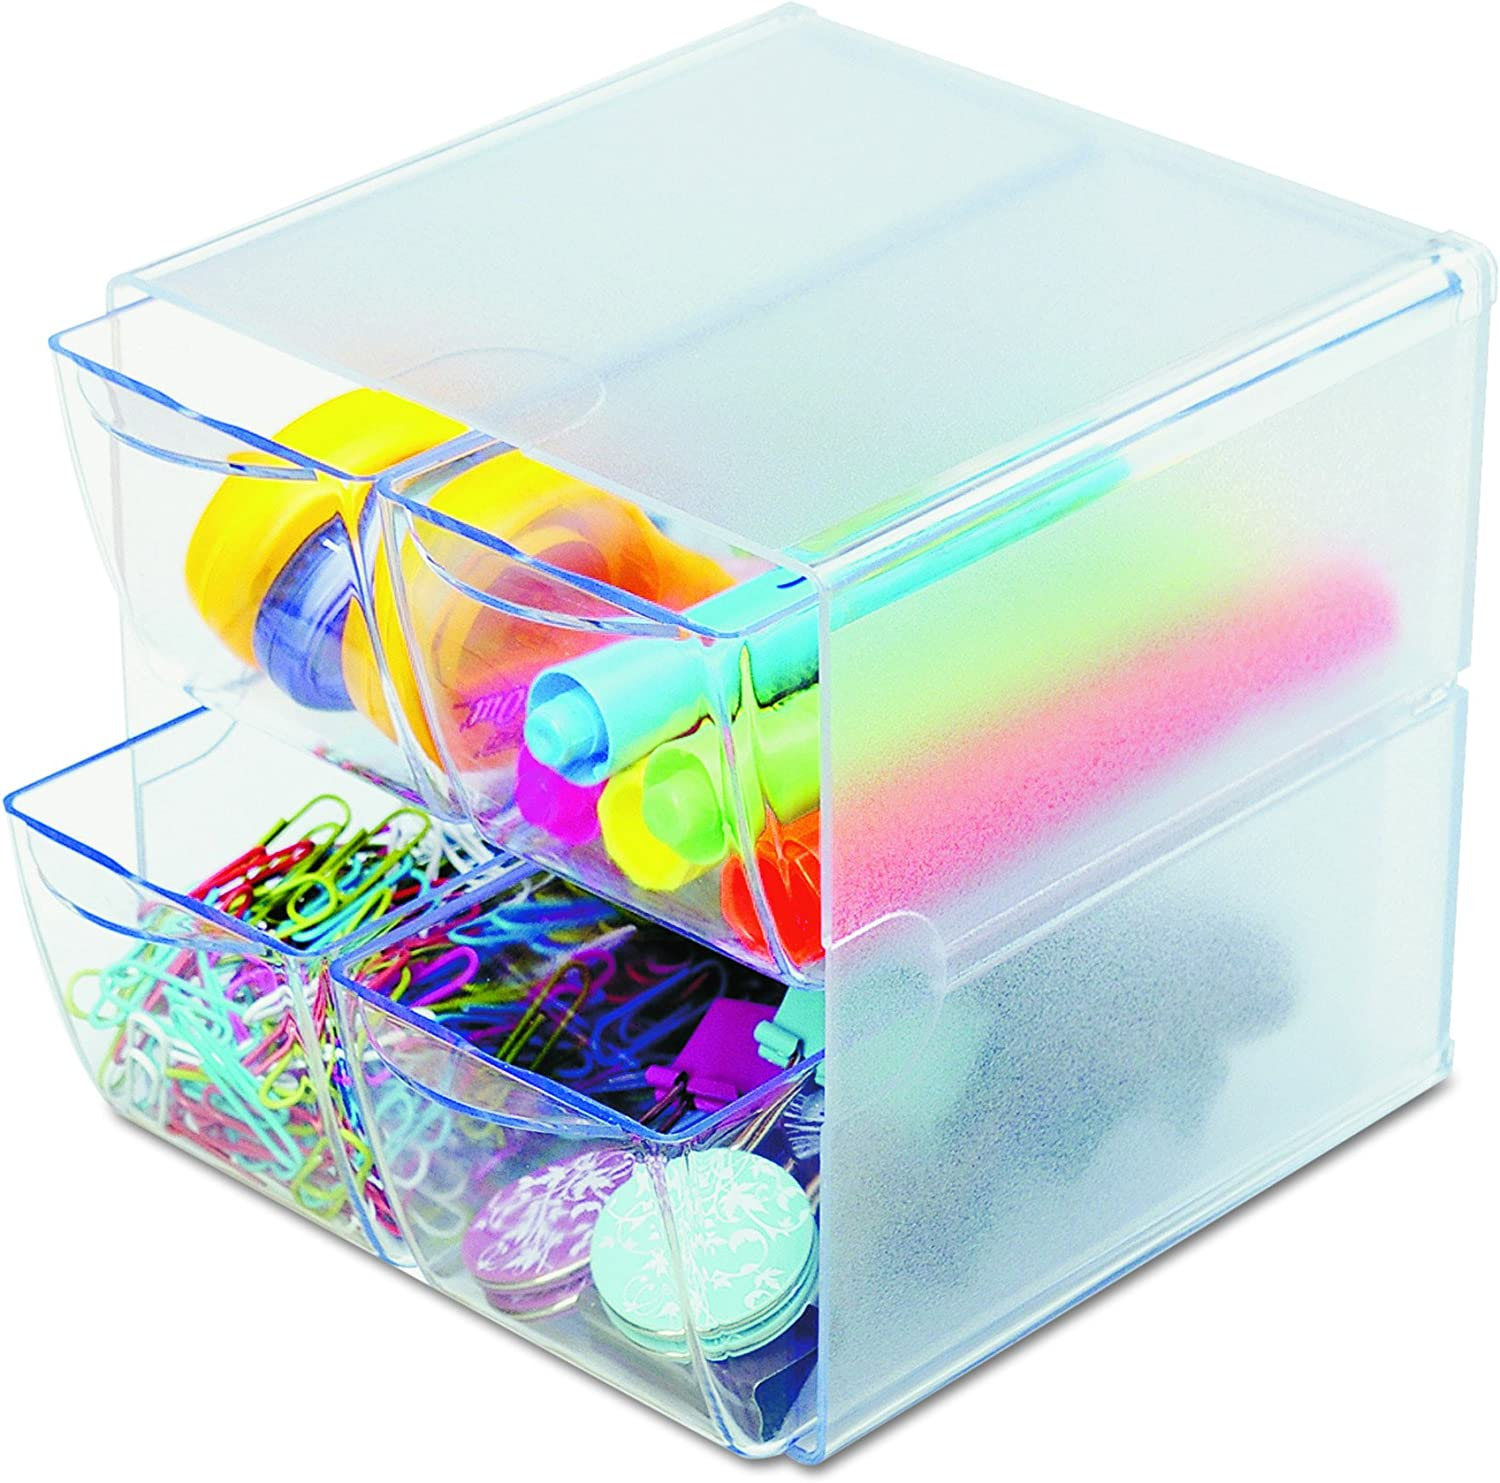 "Deflecto Stackable Cube Organizer, Desk and Craft Organizer, 4 Drawers, Clear, Removable Drawers and Dividers, 6""W x 6""H x 7 1/8""D (350301)"